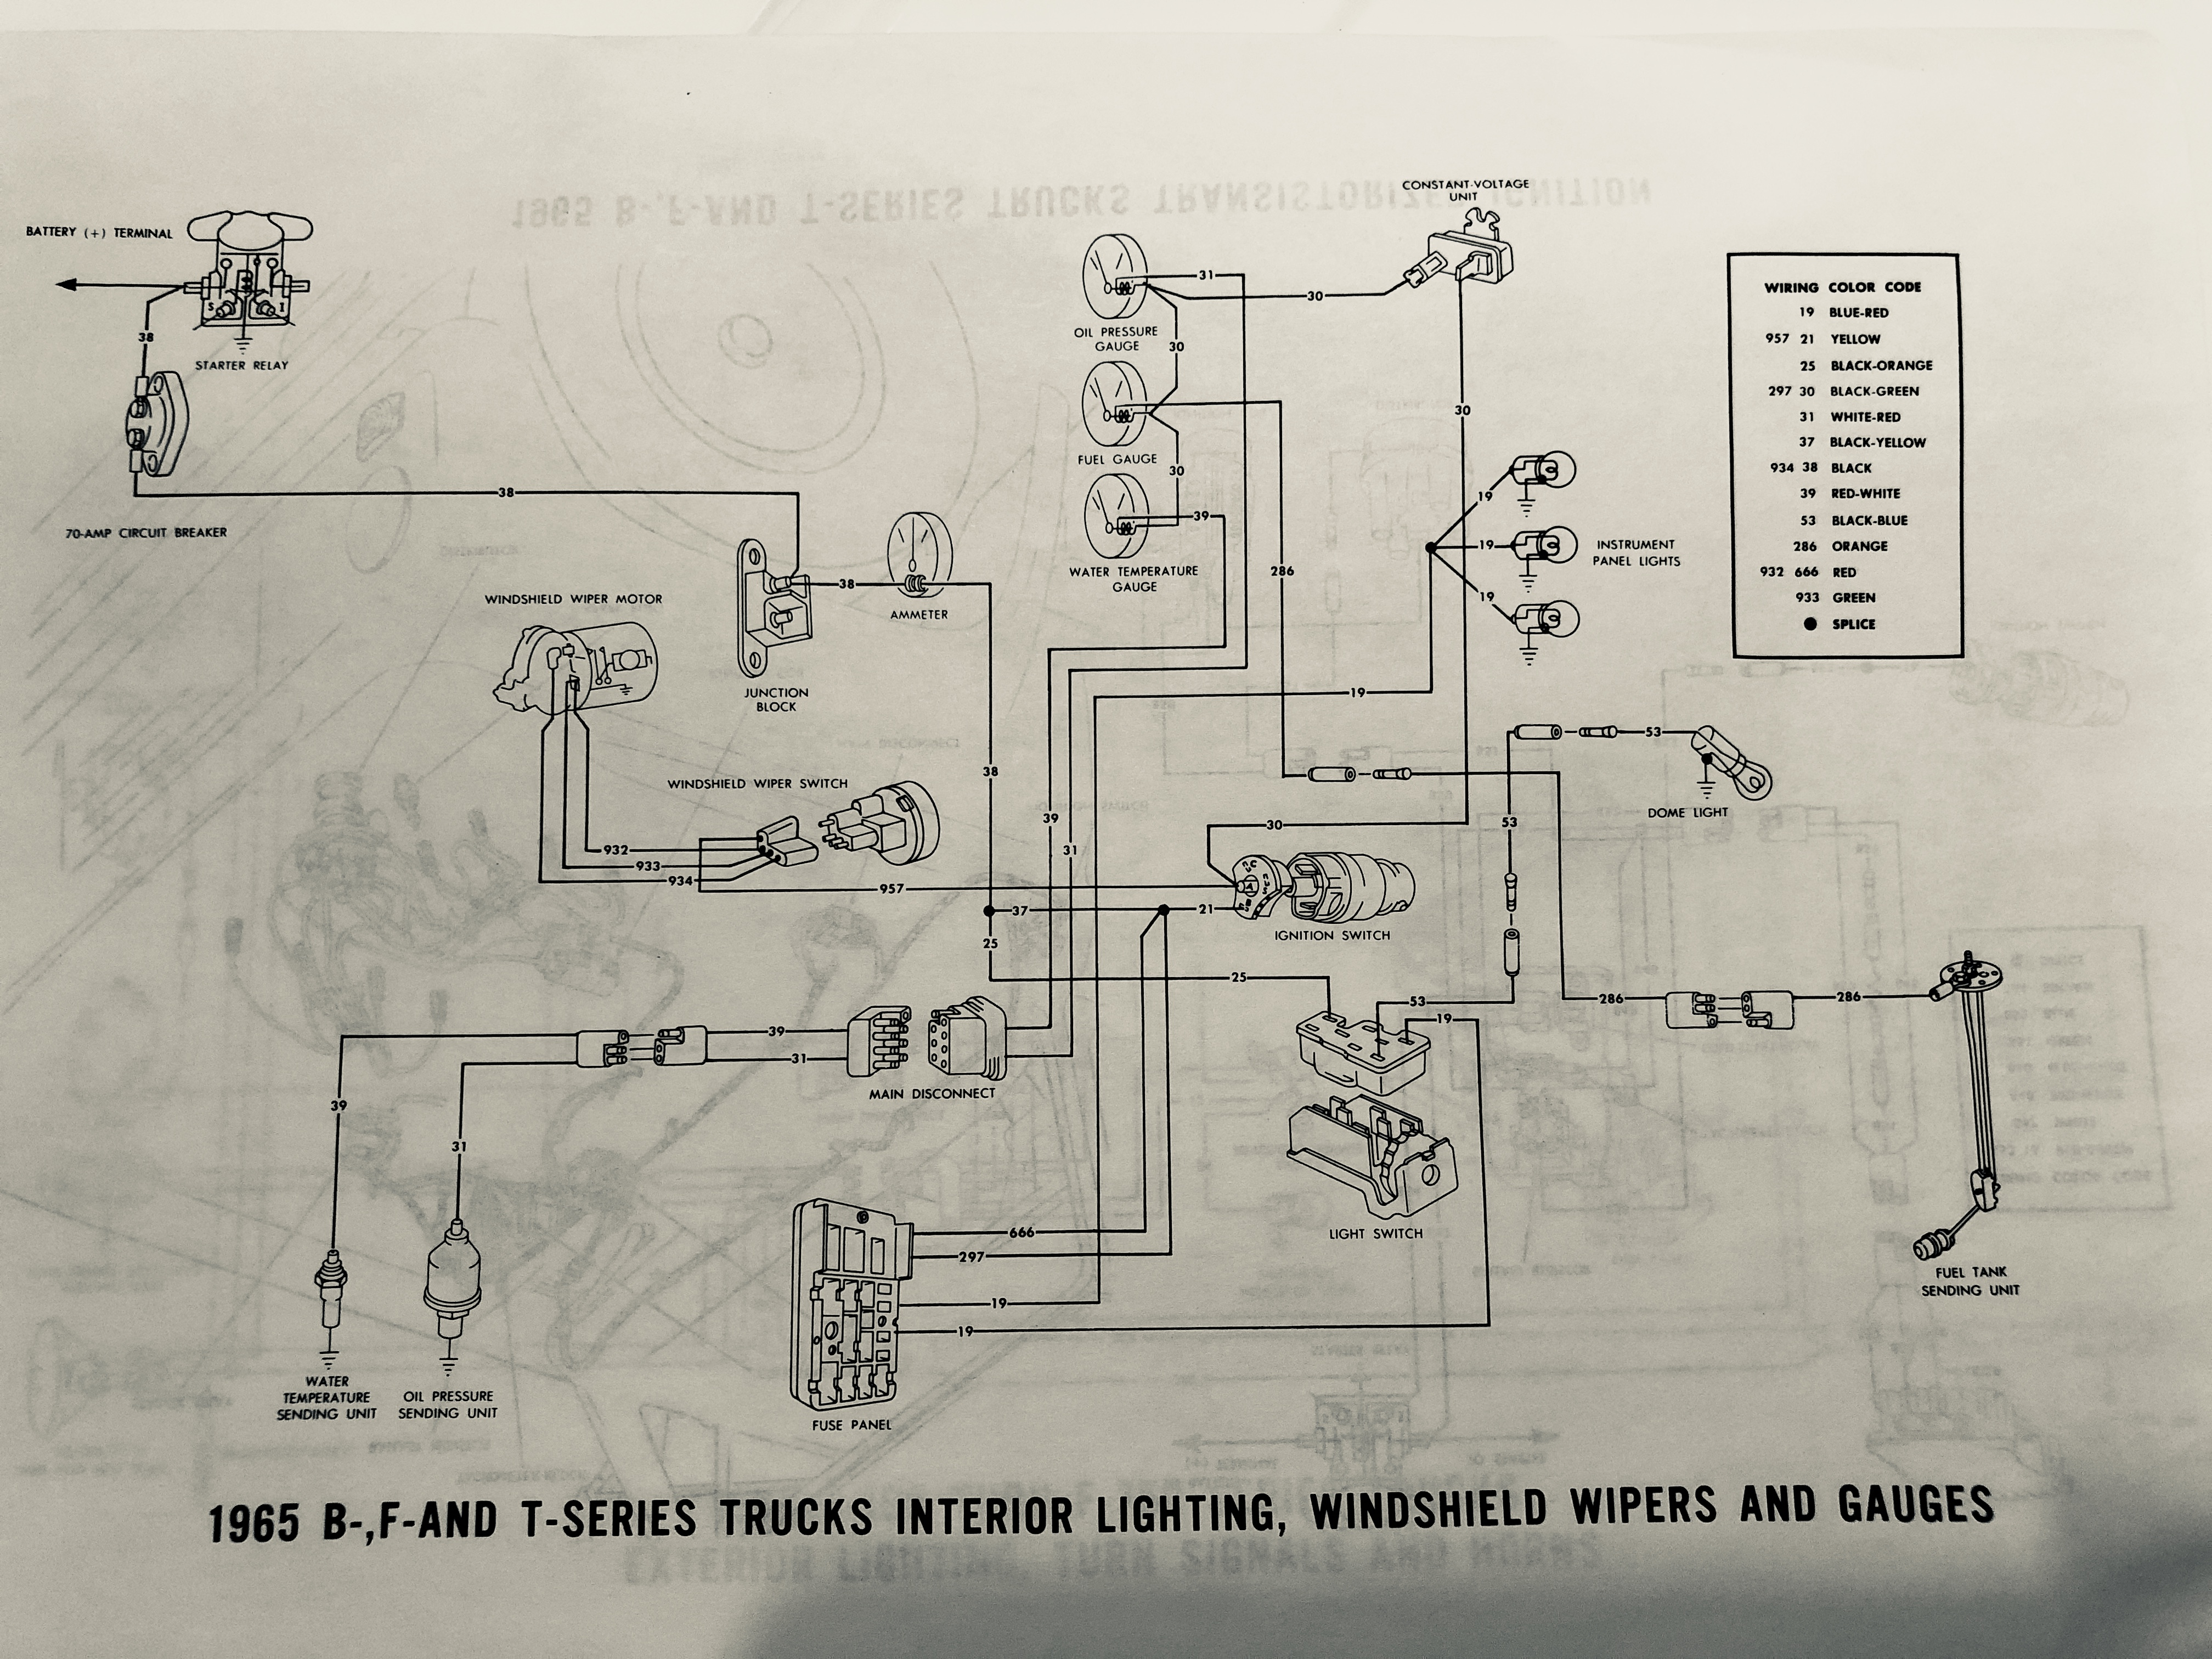 Exterior Lighting Turn Signals And Horn Schematic Diagrams Of 1964 Ford B F And T Series Trucks